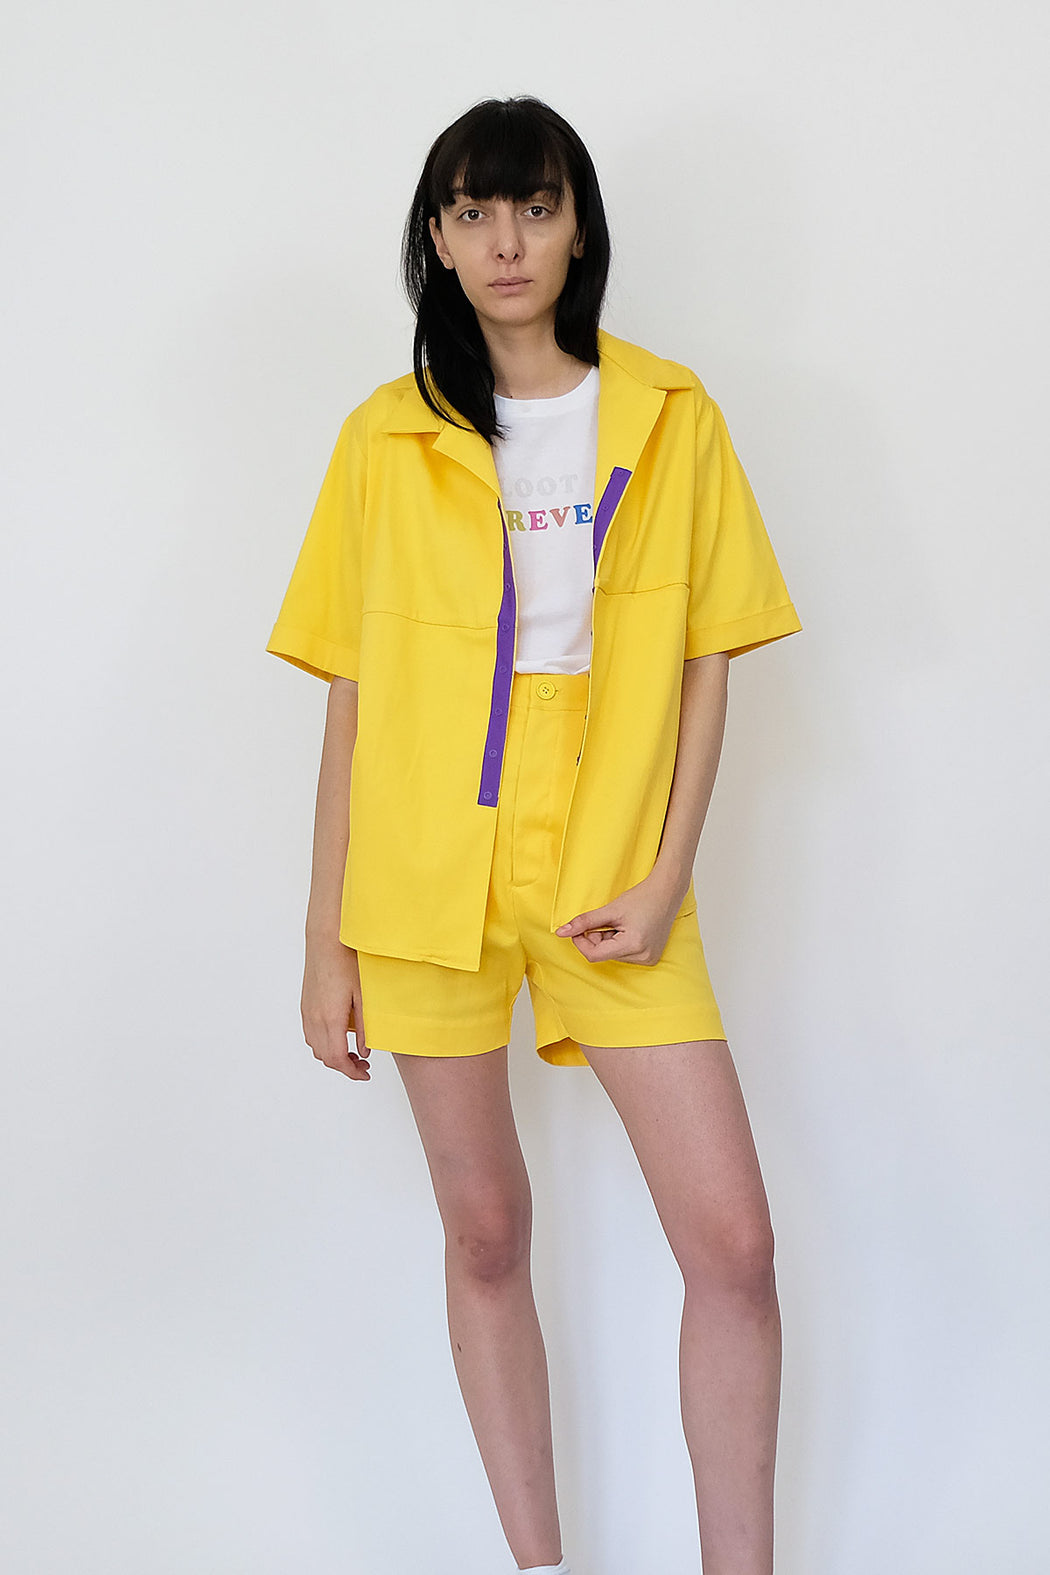 LF Short Sleeve Cotton Shirt in Bright Yellow